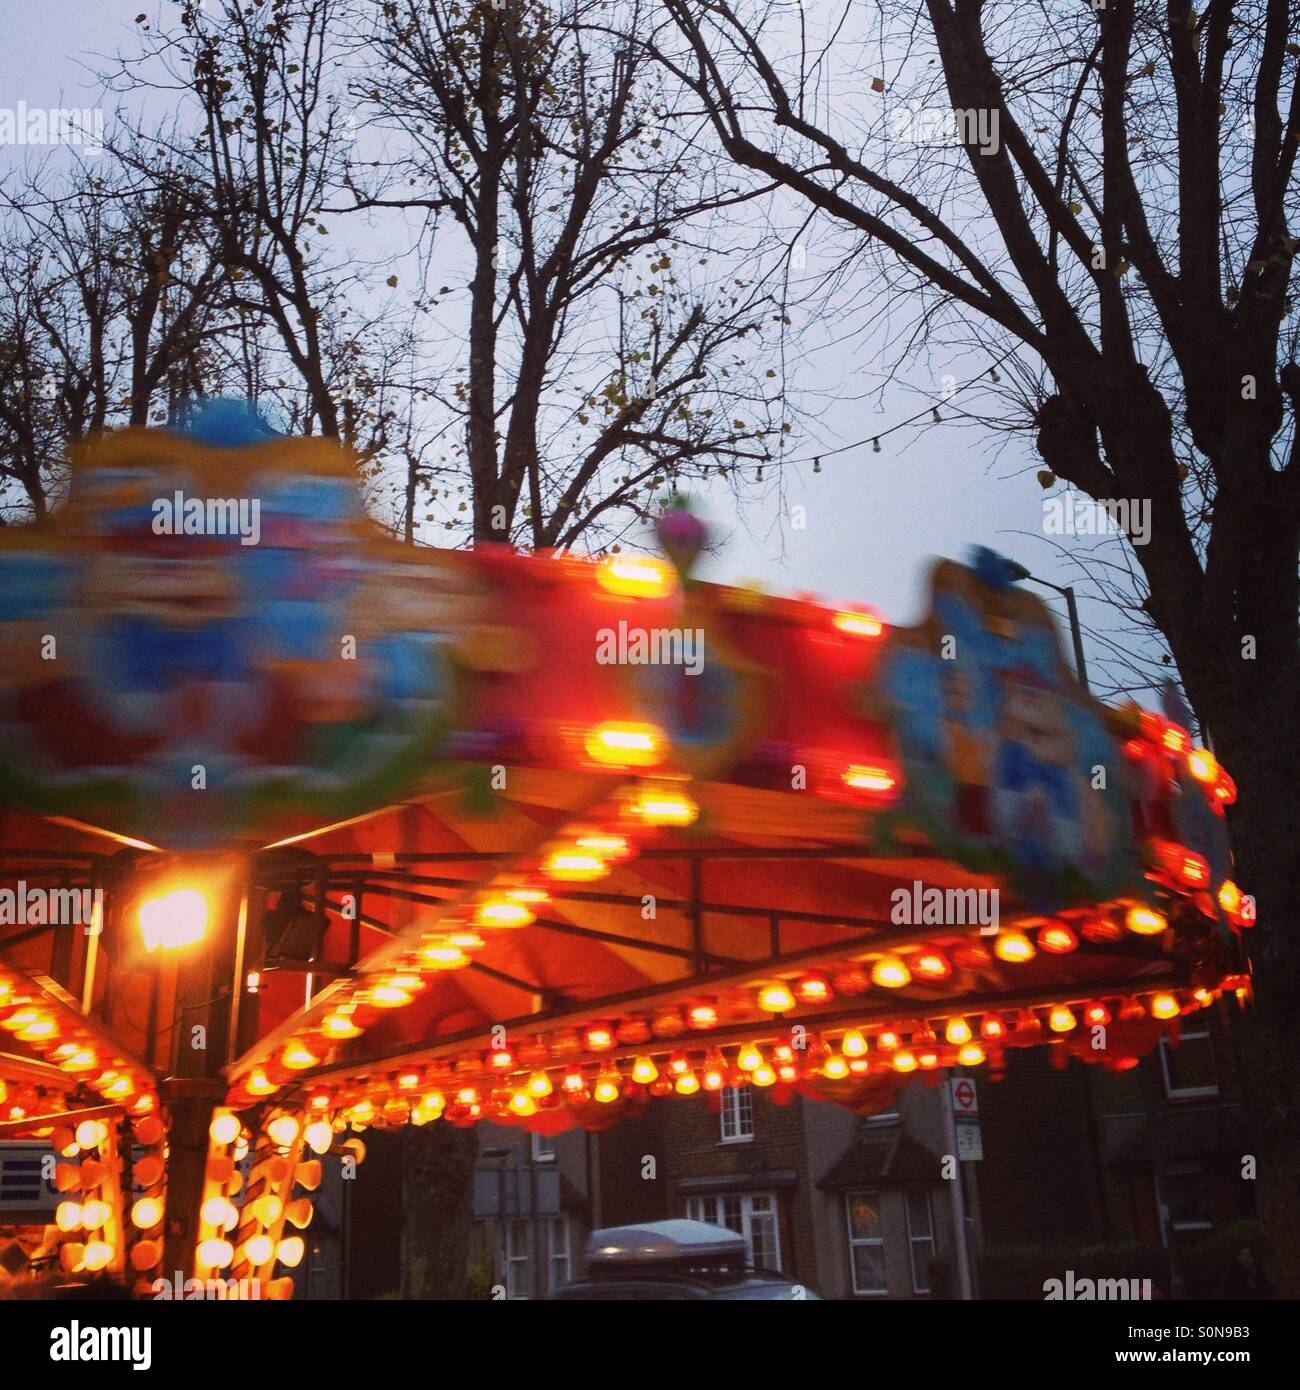 Whirling fairground ride - Stock Image